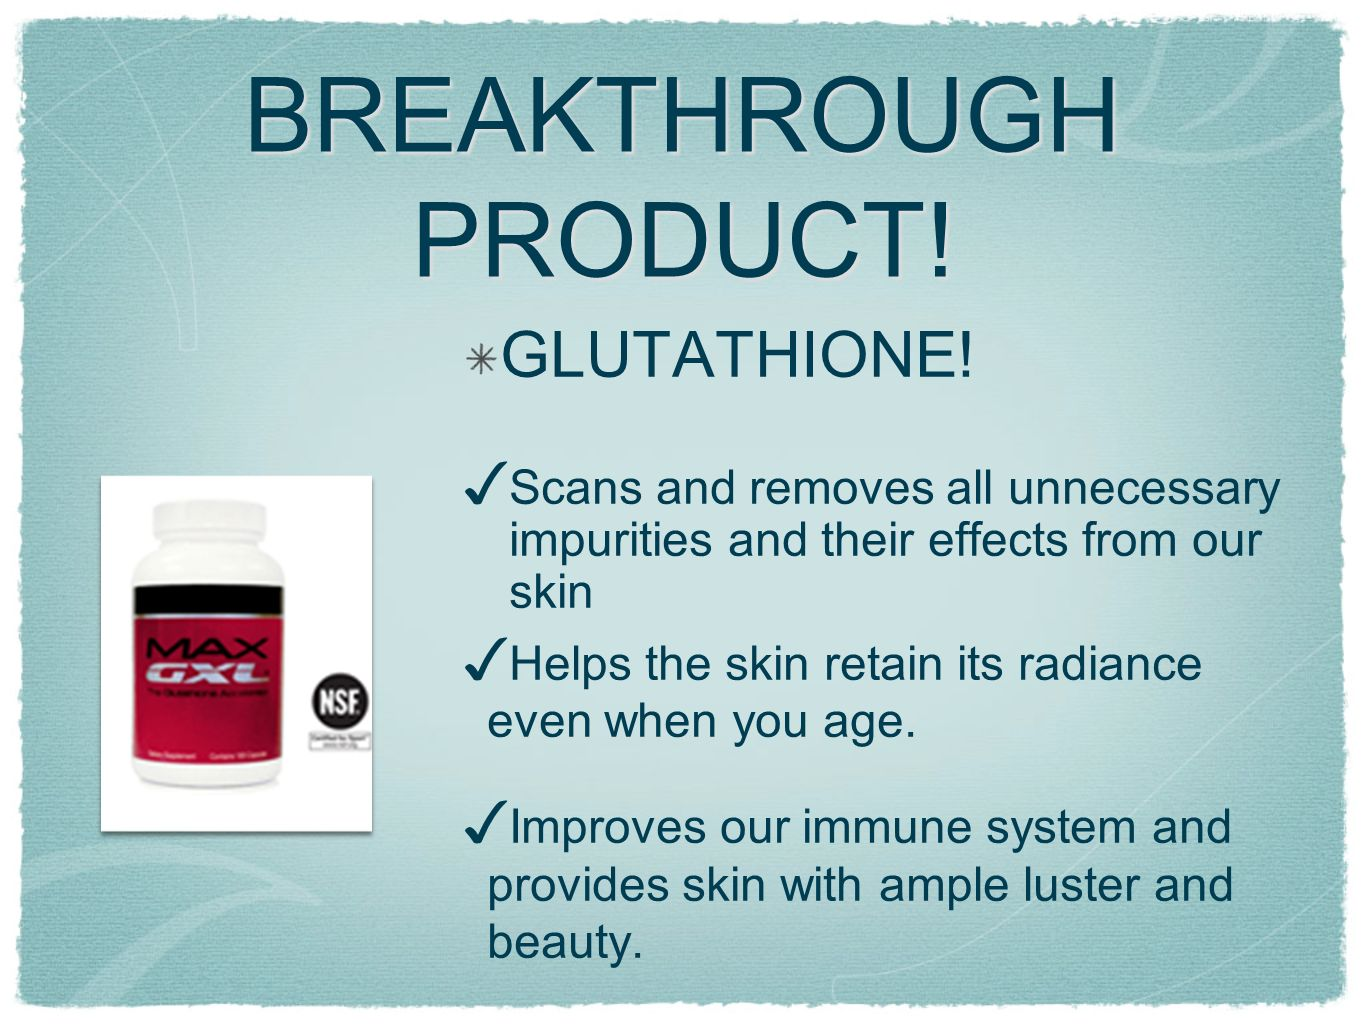 BREAKTHROUGH PRODUCT! GLUTATHIONE! Scans and removes all unnecessary impurities and their effects from our skin Helps the skin retain its radiance eve